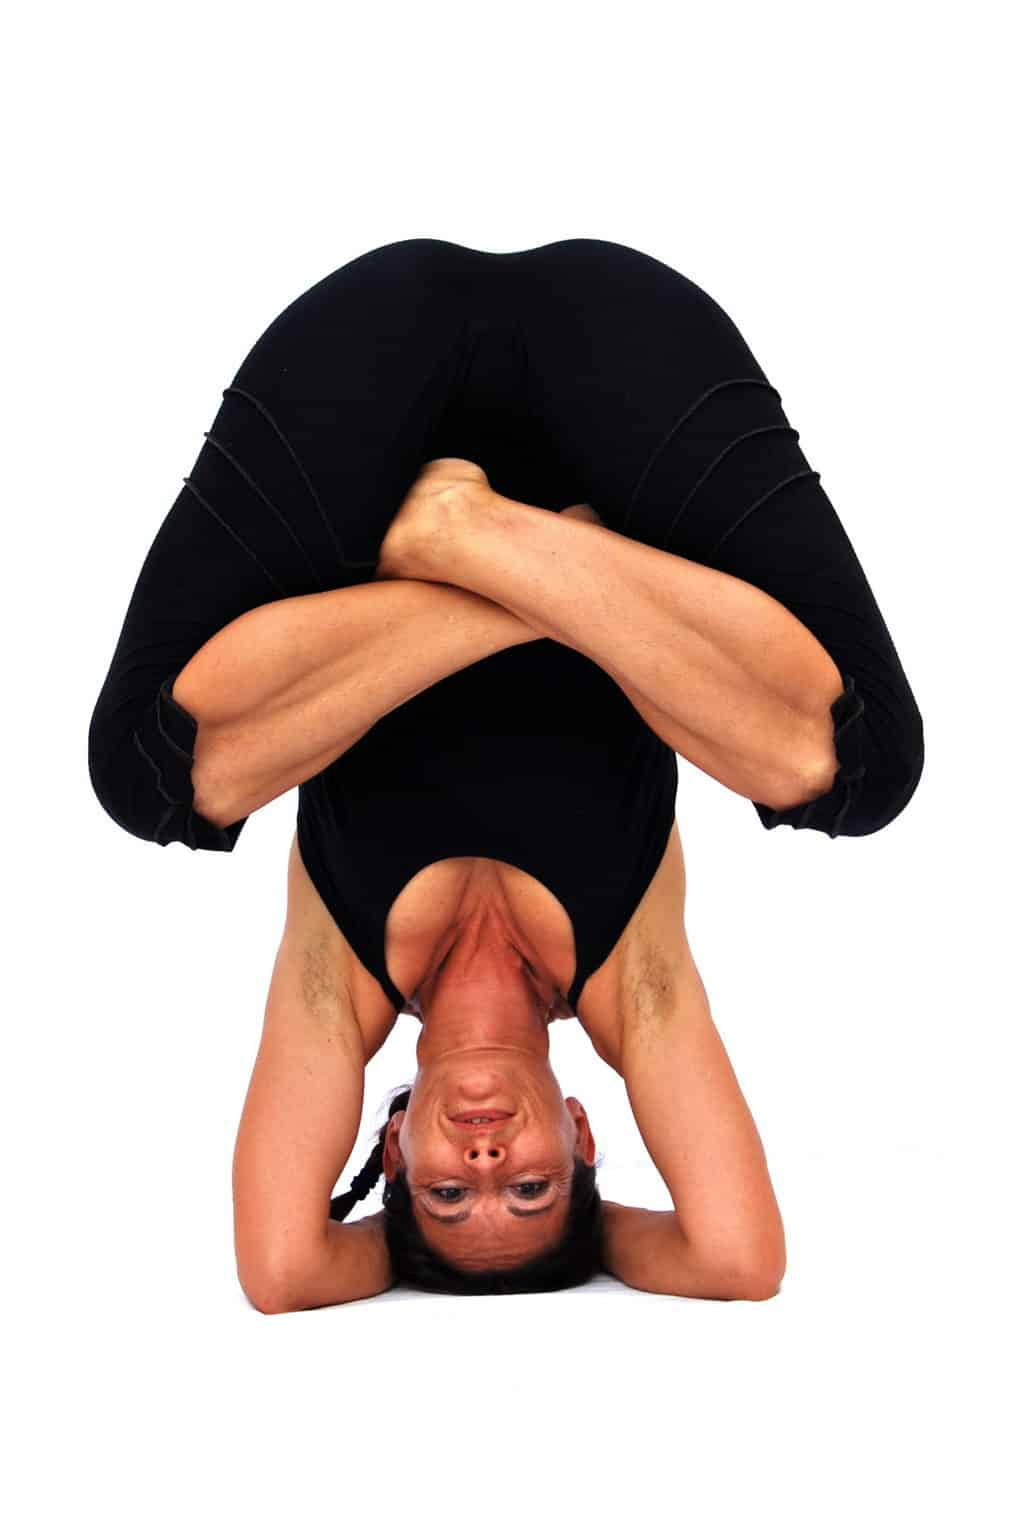 Pindasana in sirsasana embryo pose in headstand Opale Yoga Ibiza